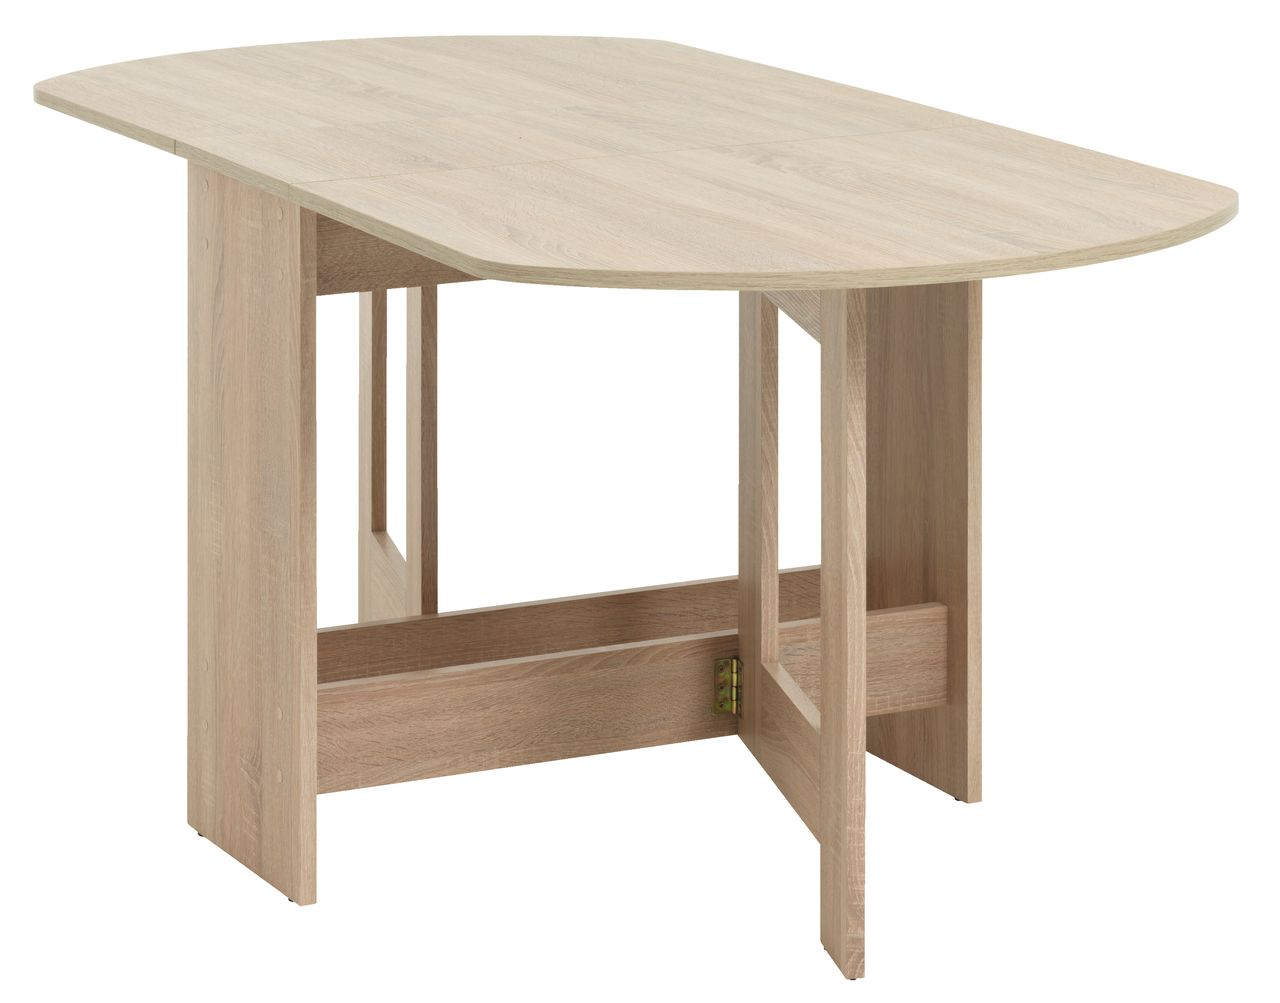 jysk dining room chair covers swing stand uk table obling 80x100 163 oak